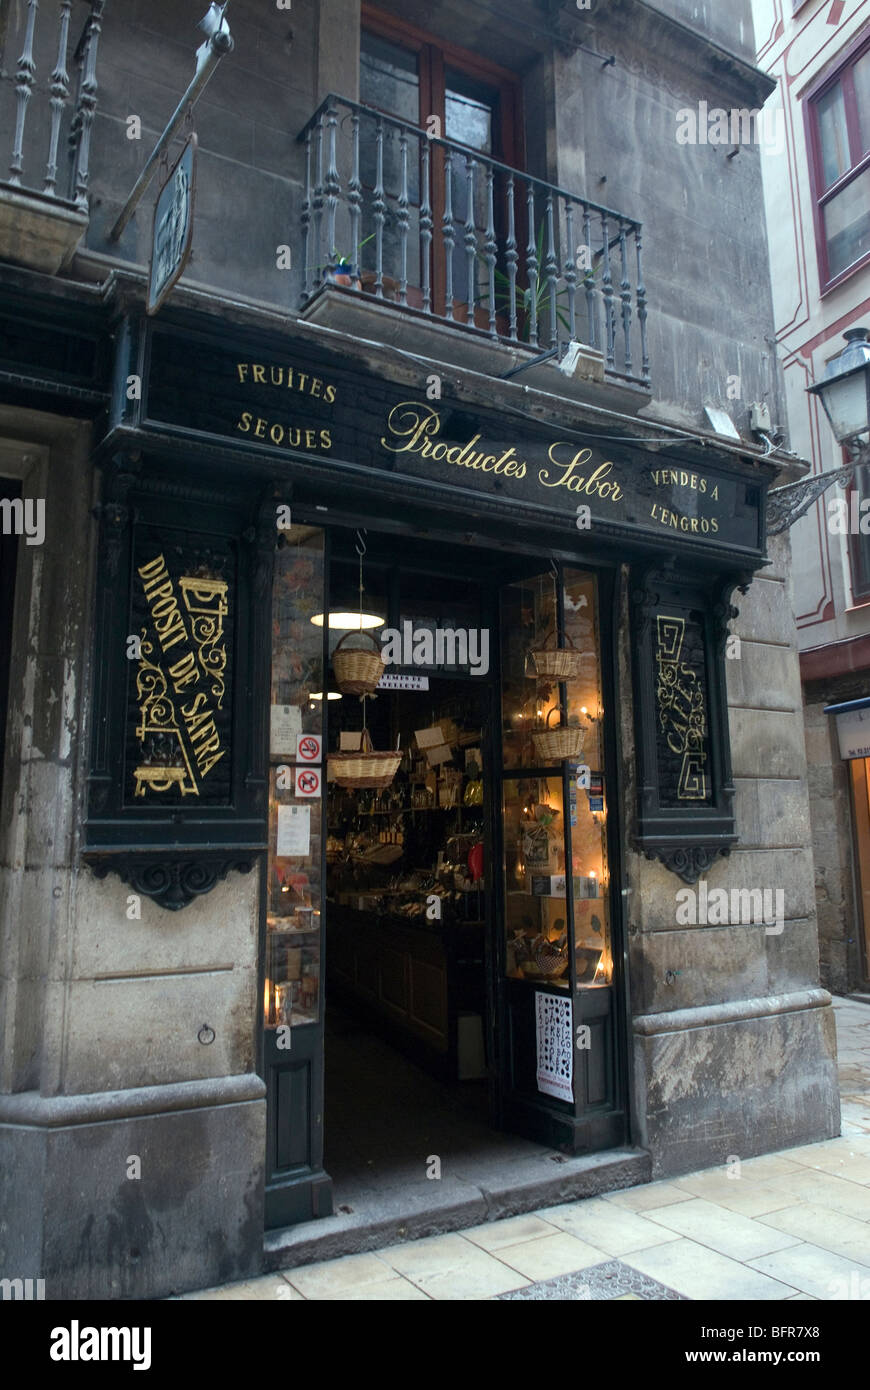 Traditional shop in Barcelona's Barri Gotic - Stock Image